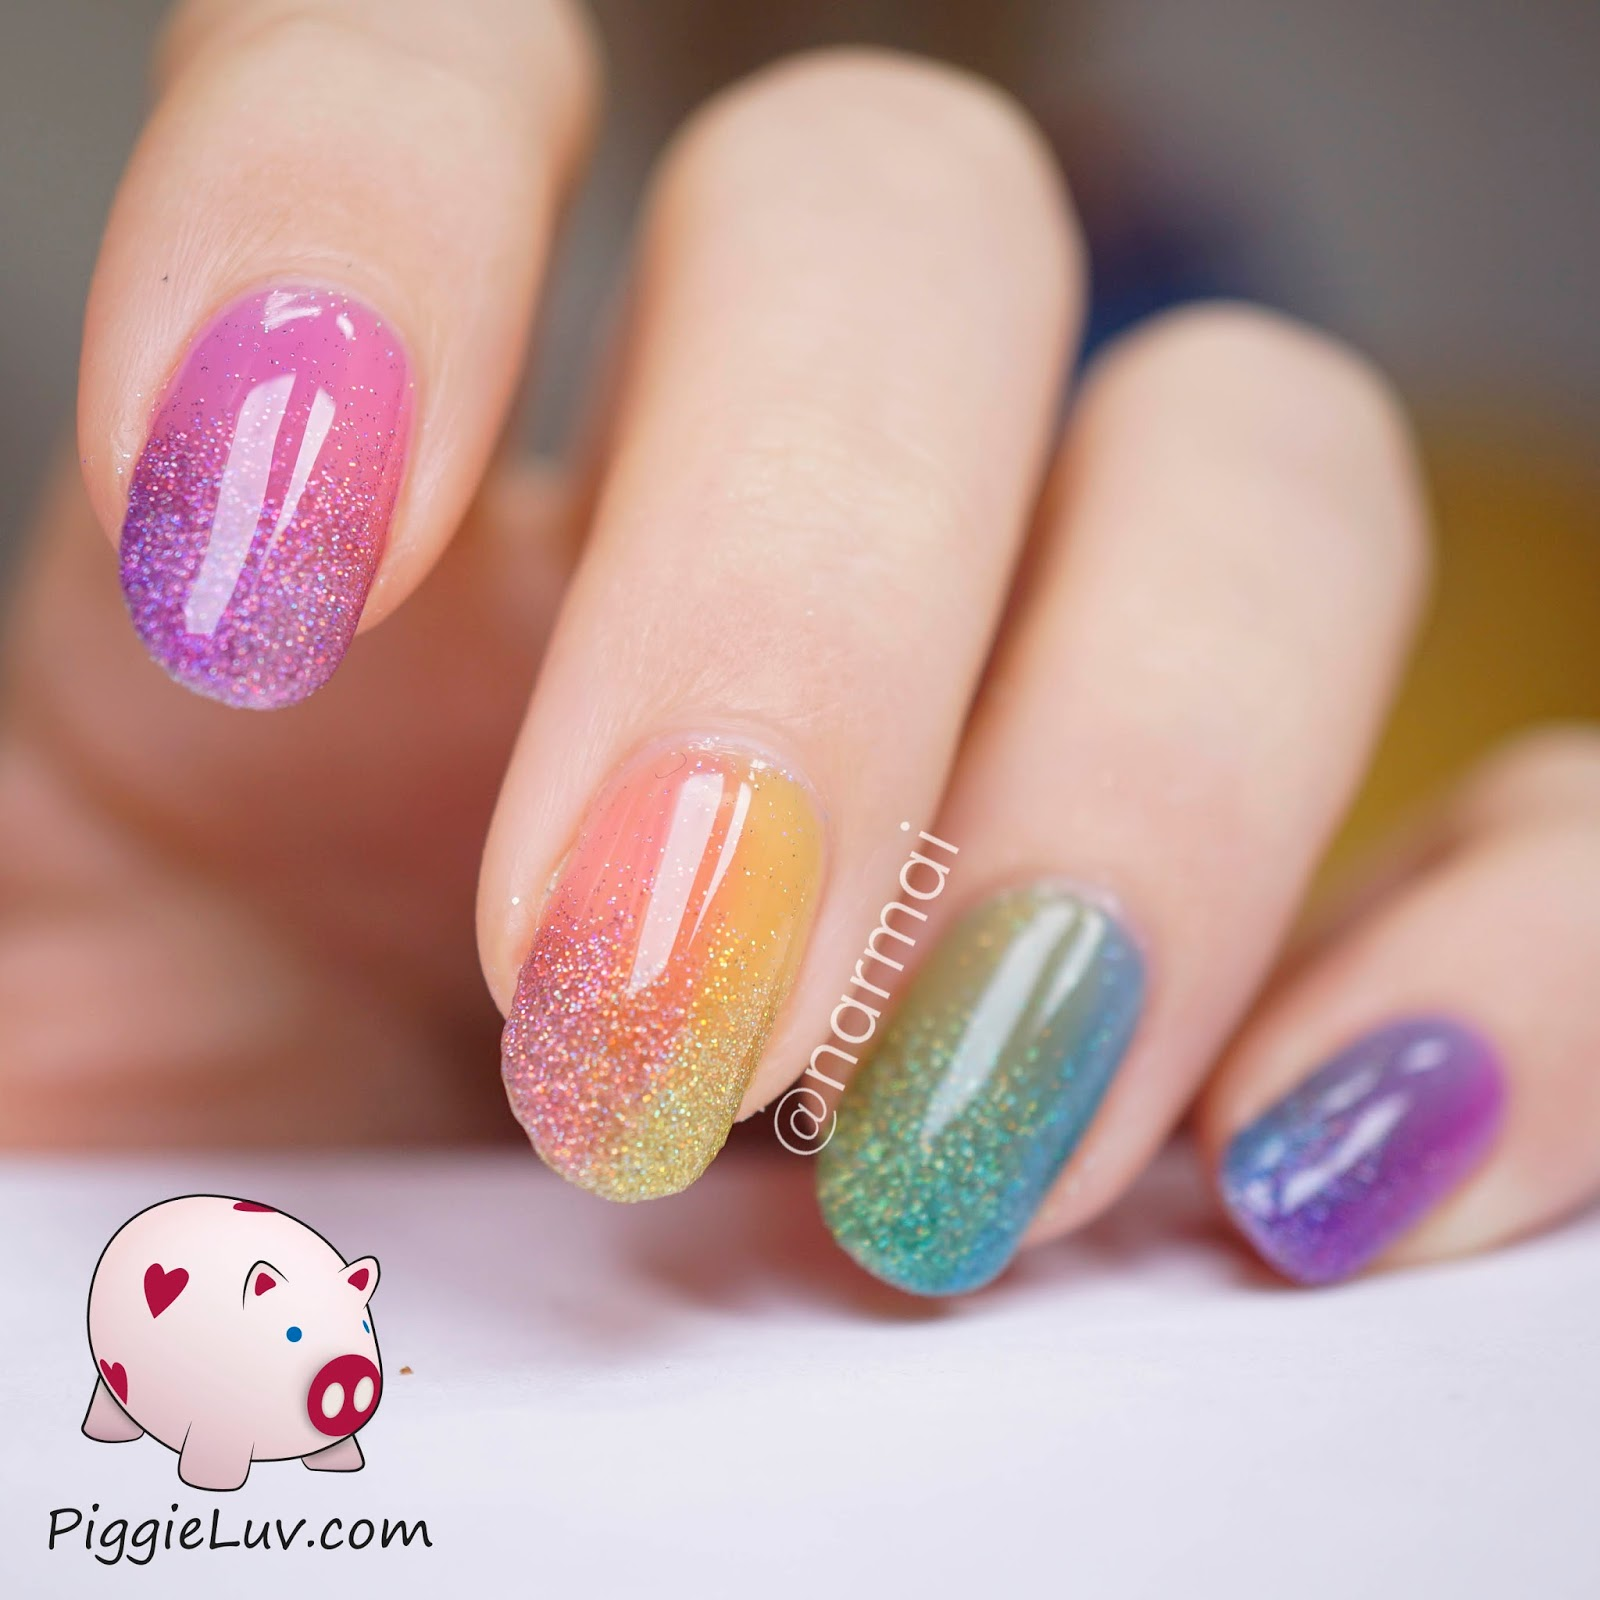 Piggieluv double gradient glitter rainbow nail art with opi sheer of gradient combined the glitter gradient and the rainbow sideways gradient it turned out rather magnificent not to mention sparkly and shiny prinsesfo Gallery